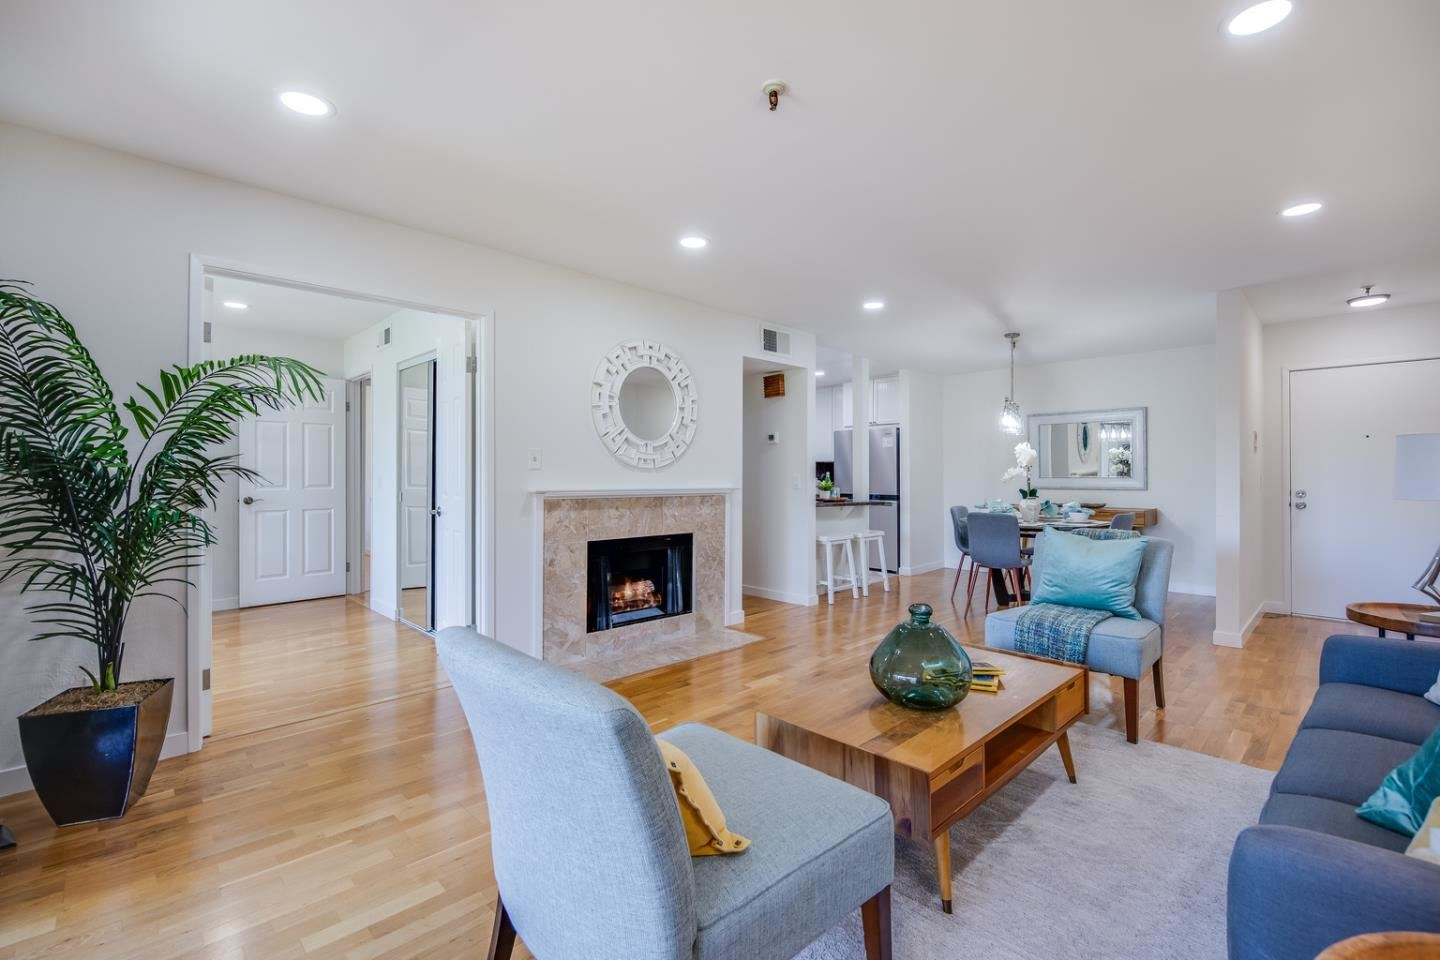 Photo for 49 Showers DR J318 #J318, MOUNTAIN VIEW, CA 94040 (MLS # ML81837243)